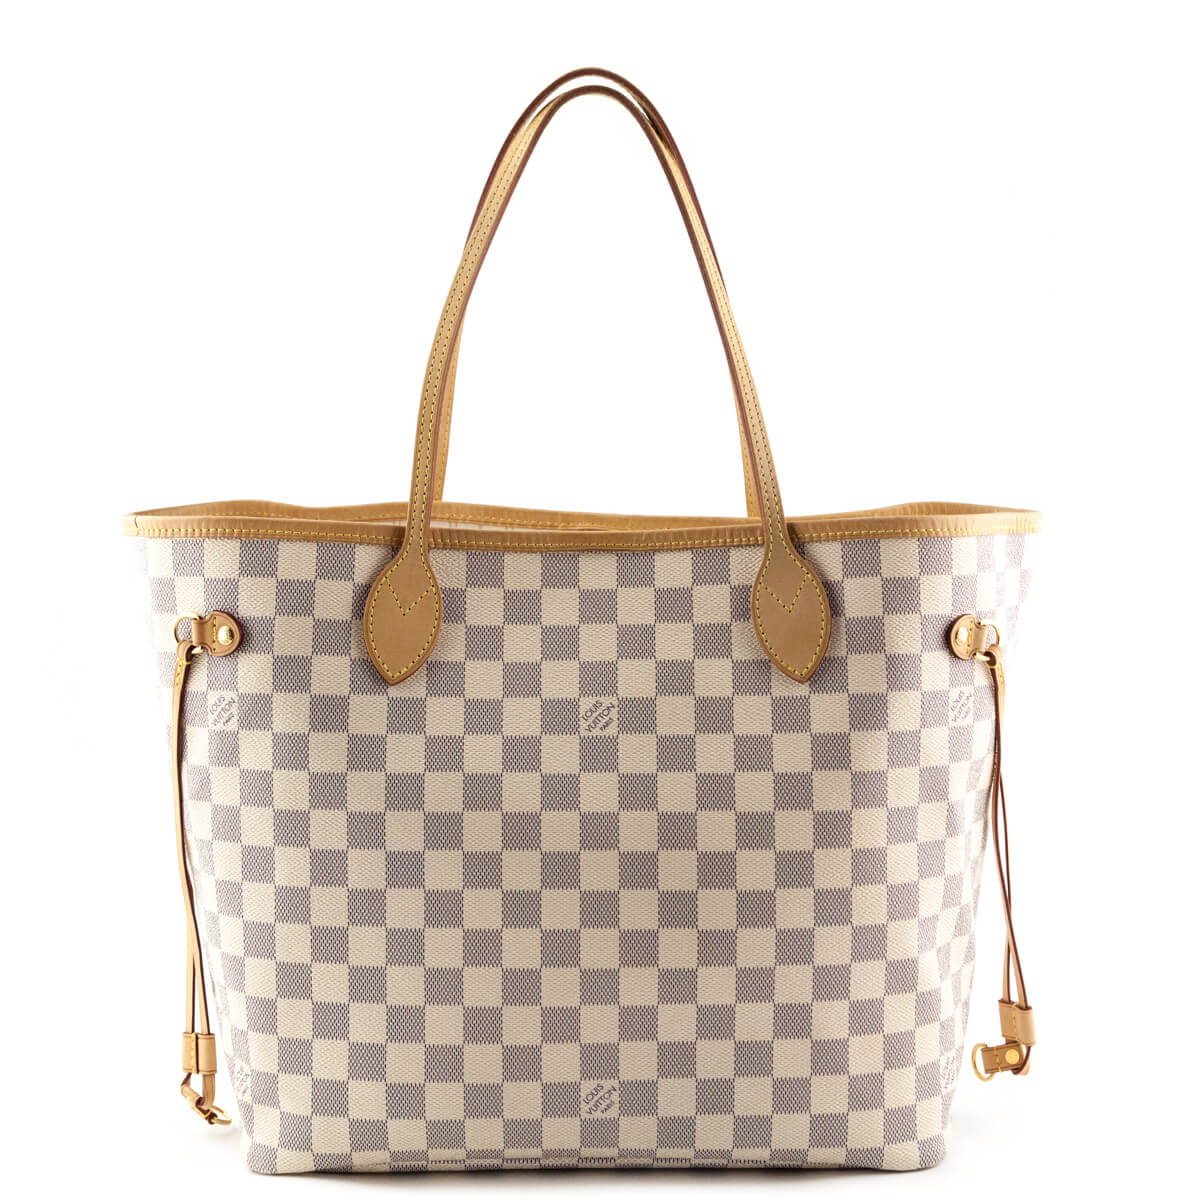 f9a4a35e1fa6 Louis Vuitton Damier Azur Neverfull MM - LOVE that BAG - Preowned Authentic  Designer Handbags ...